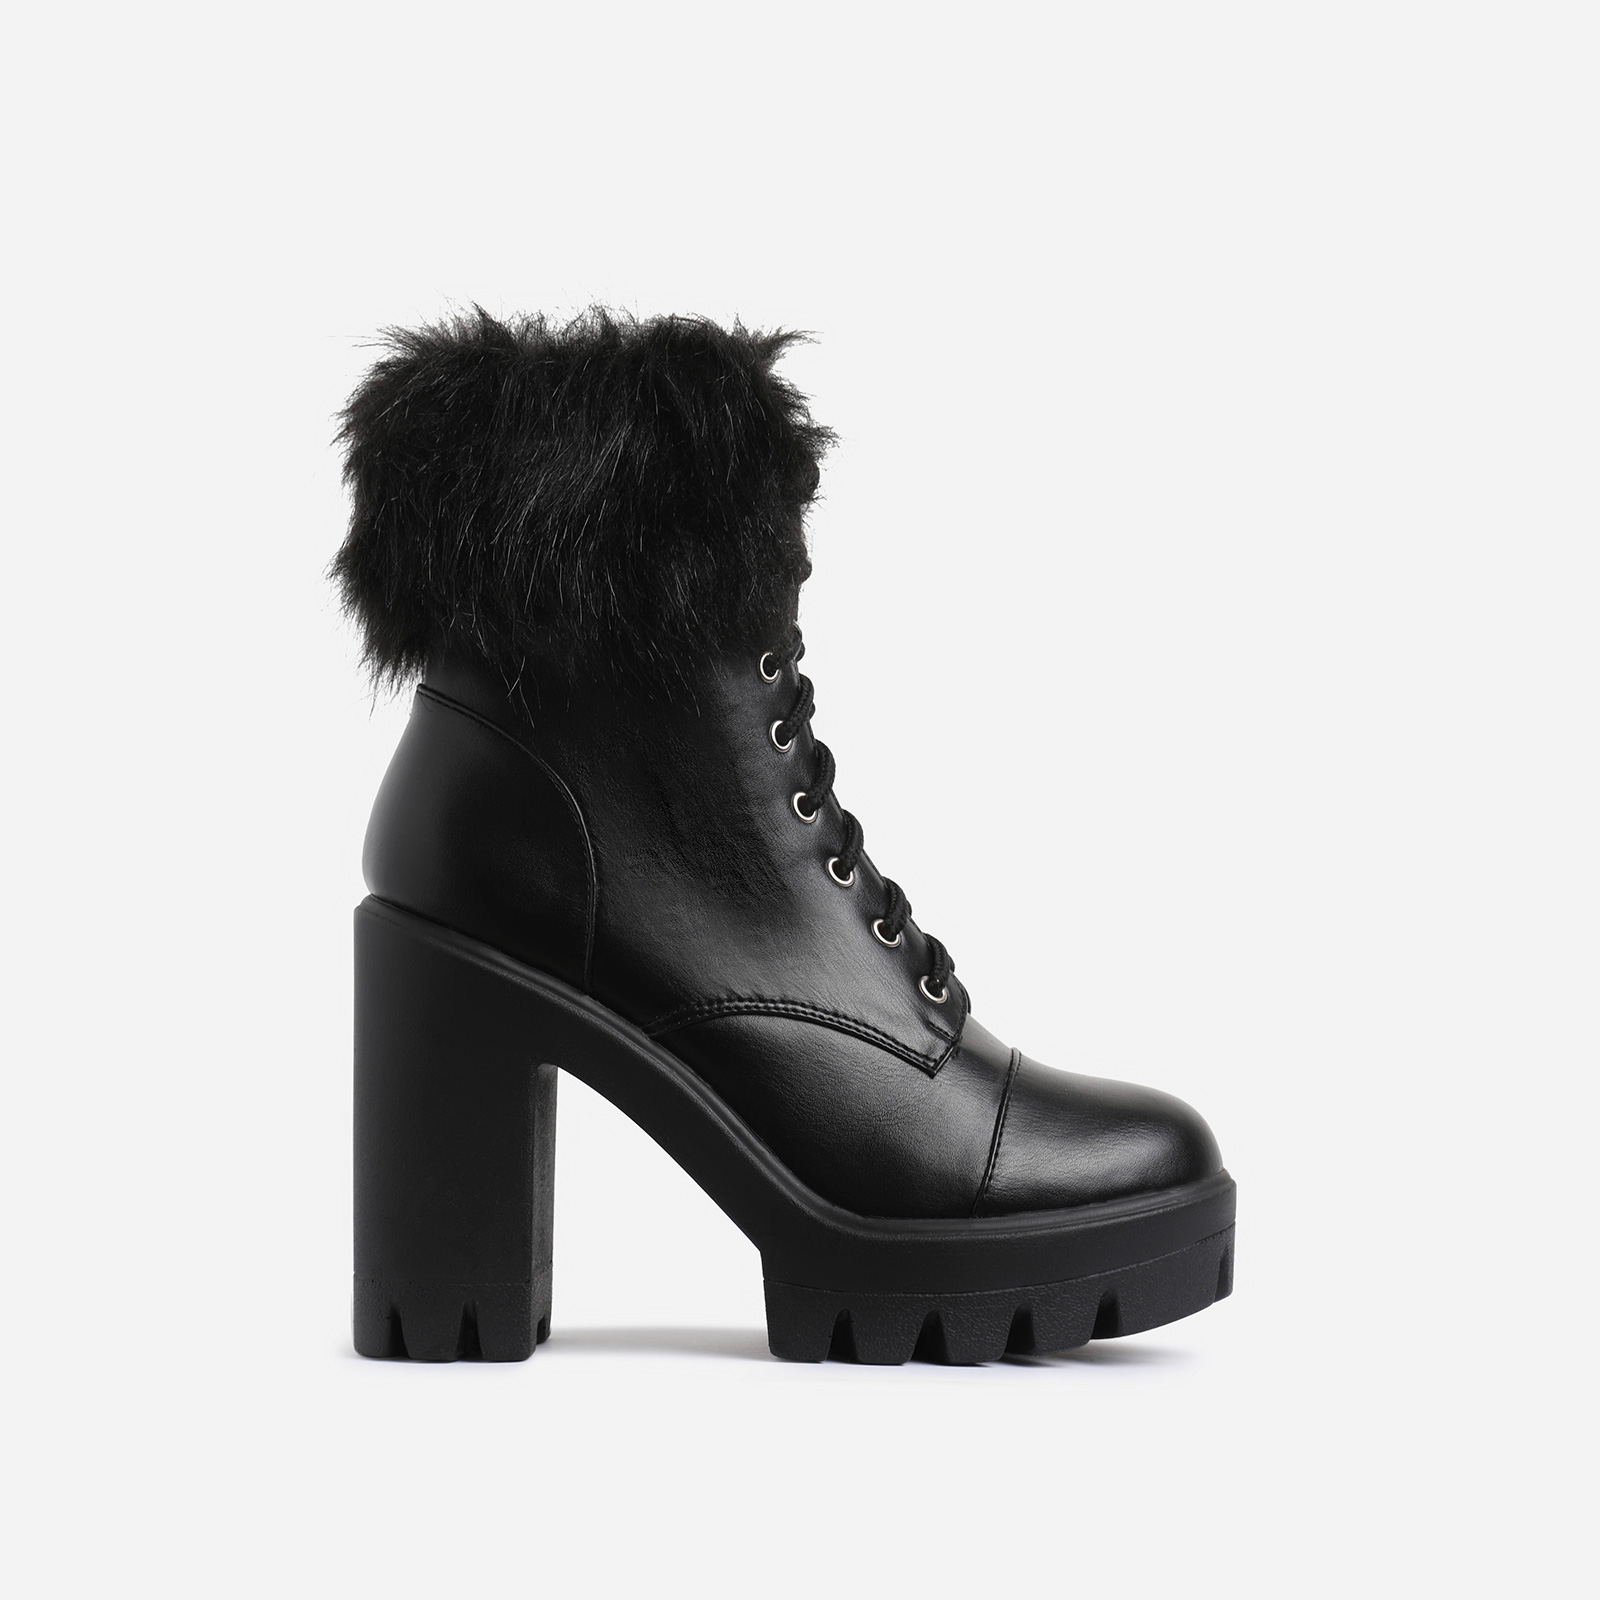 Toasty Faux Fur Lace Up Block Heel Ankle Biker Boot In Black Faux Leather